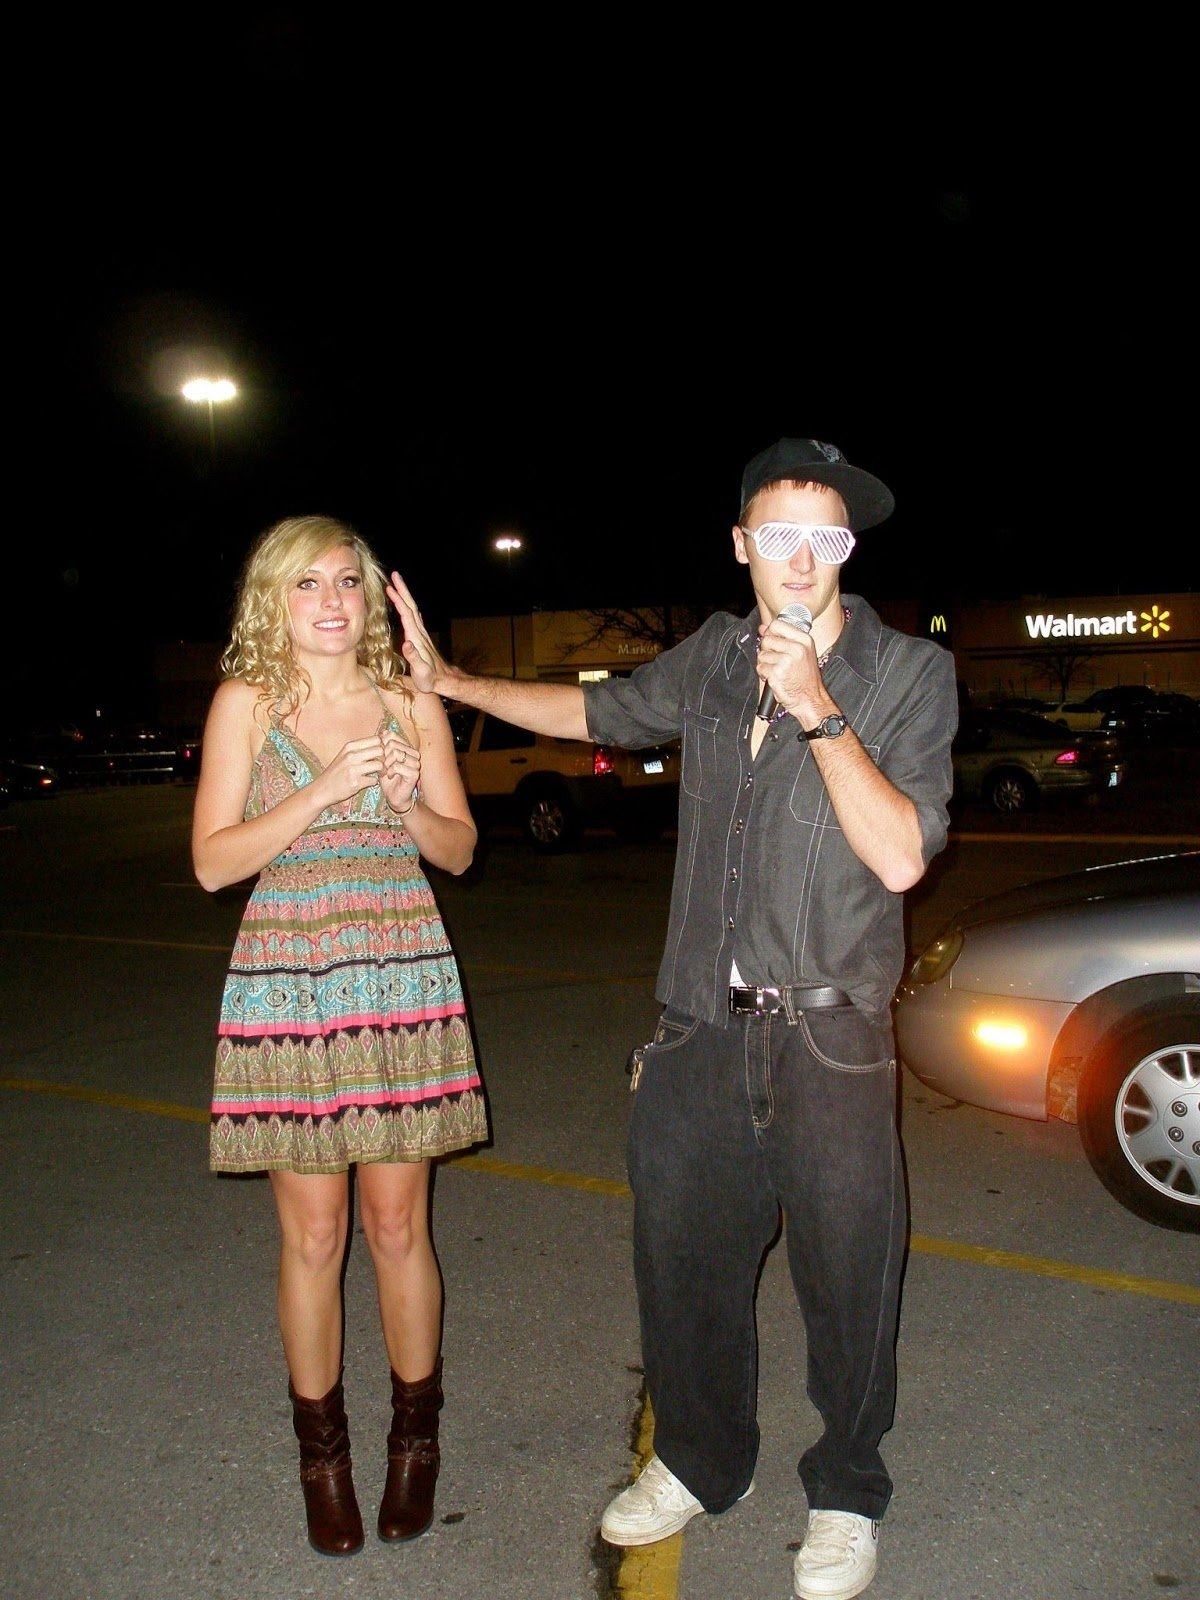 10 Ideal Couples Halloween Costume Ideas 2013 katie in kansas diy couples halloween costume ideas 5 2021